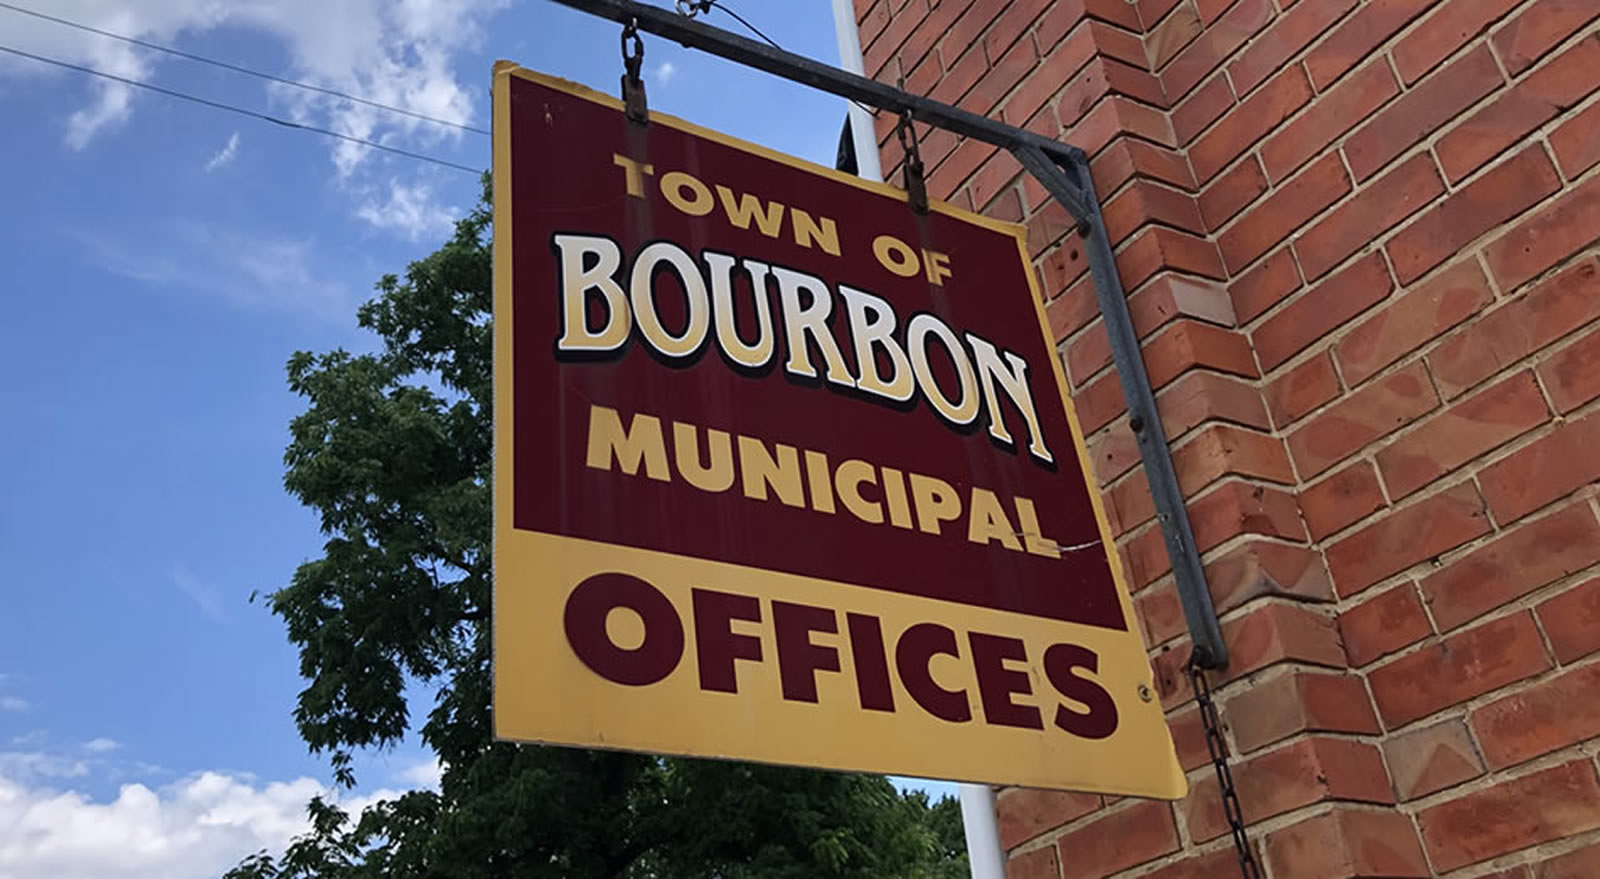 bourbon-municipal-offices-sign.jpg